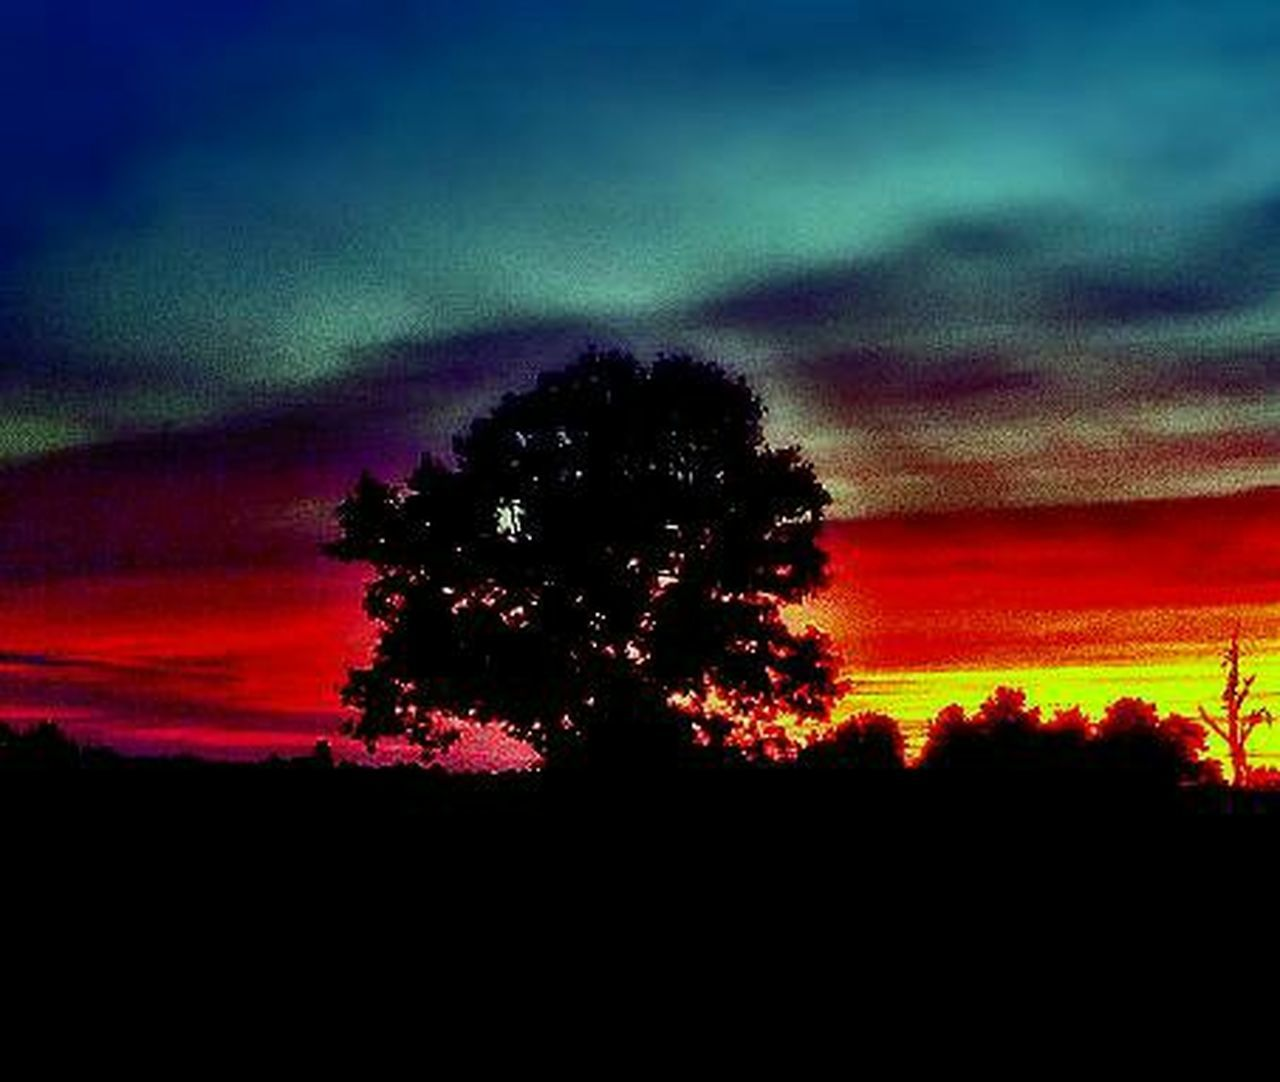 tree, silhouette, nature, sky, sunset, beauty in nature, dramatic sky, scenics, majestic, tranquility, tranquil scene, growth, cloud - sky, no people, landscape, outdoors, night, astronomy